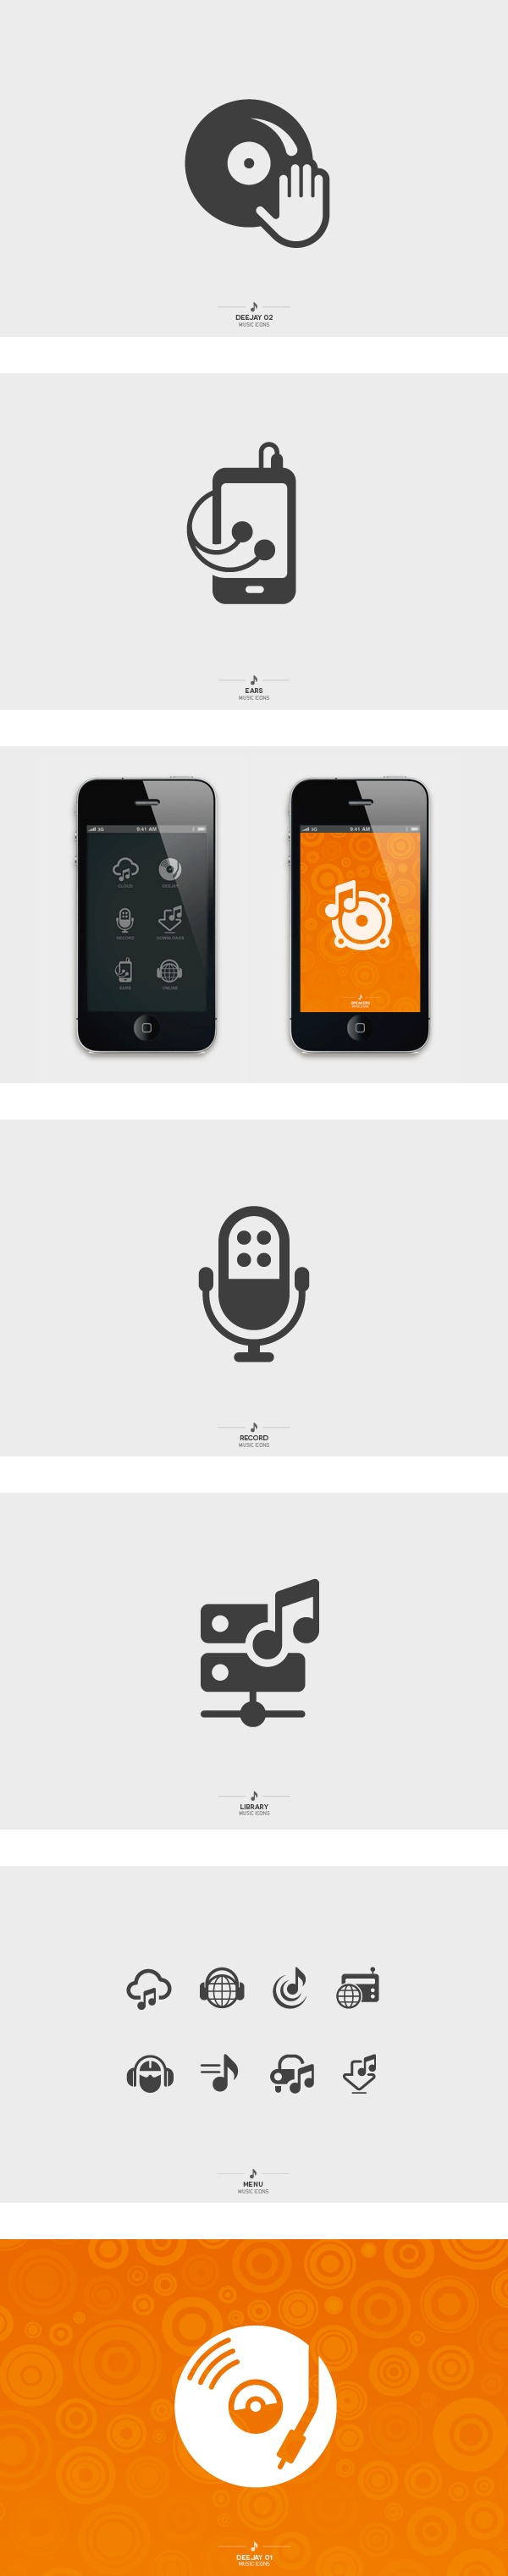 Icon designs of popular music actions - by Tom Nulens / Sodafish